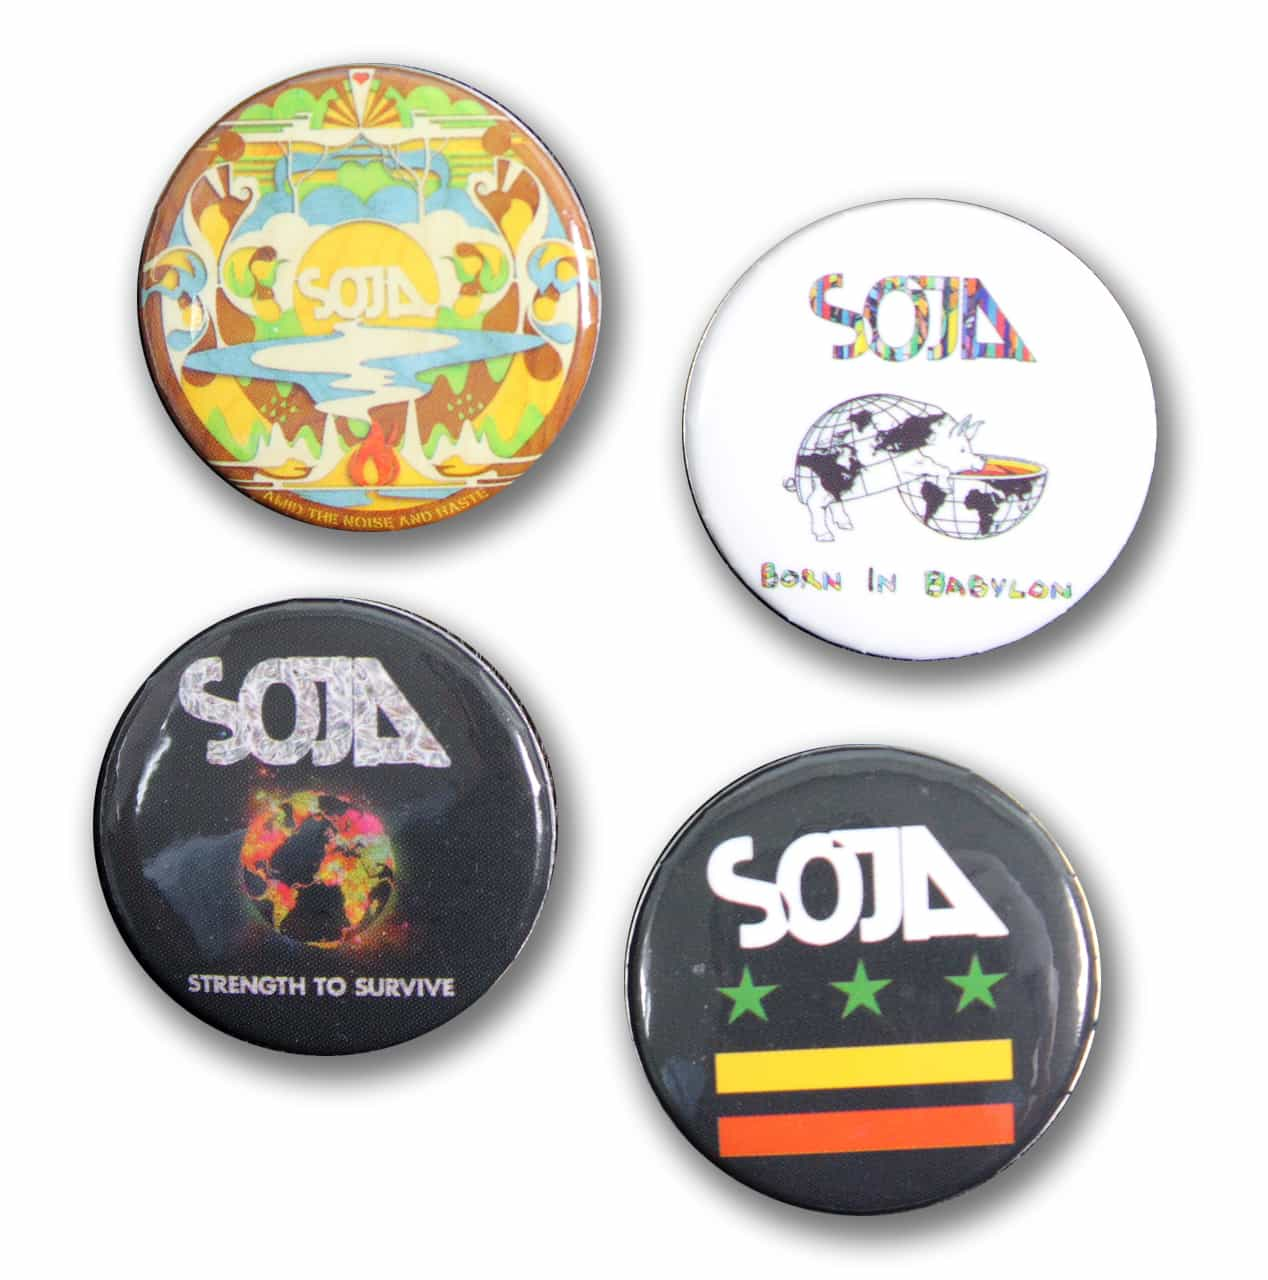 Soja, Poetry in Motion Promotional buttons